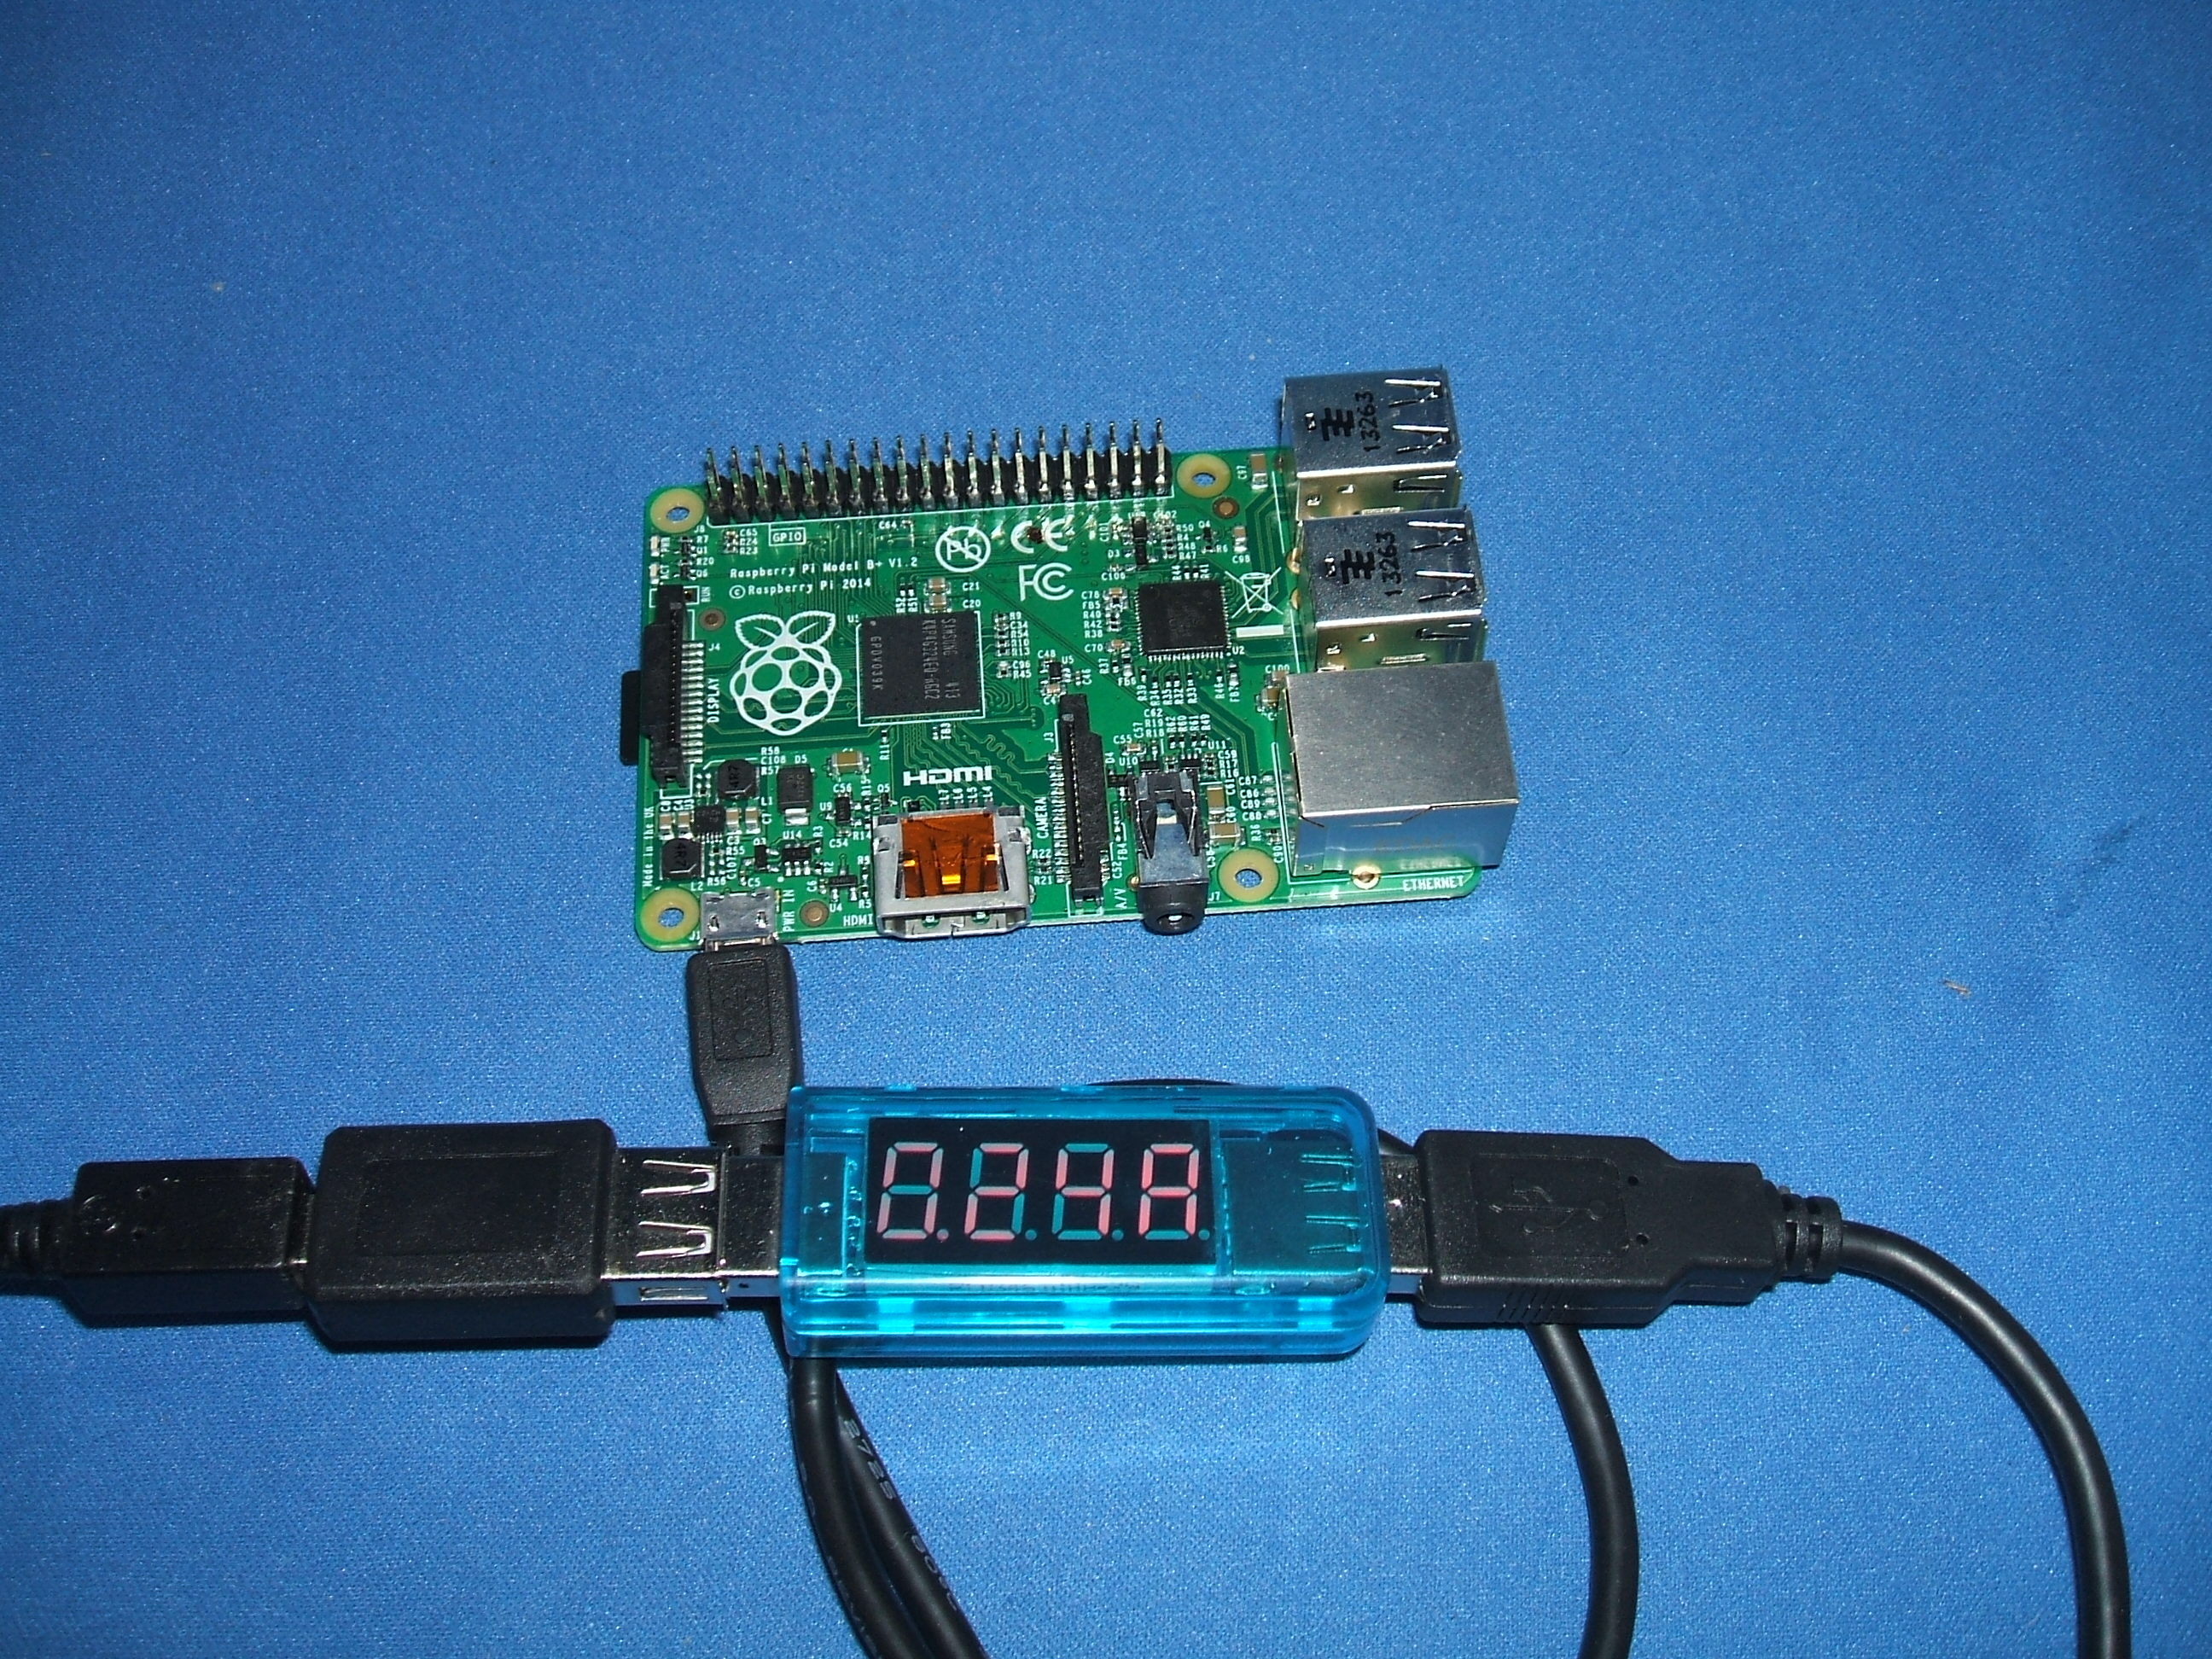 Photo of DVM connected to a Pi B+